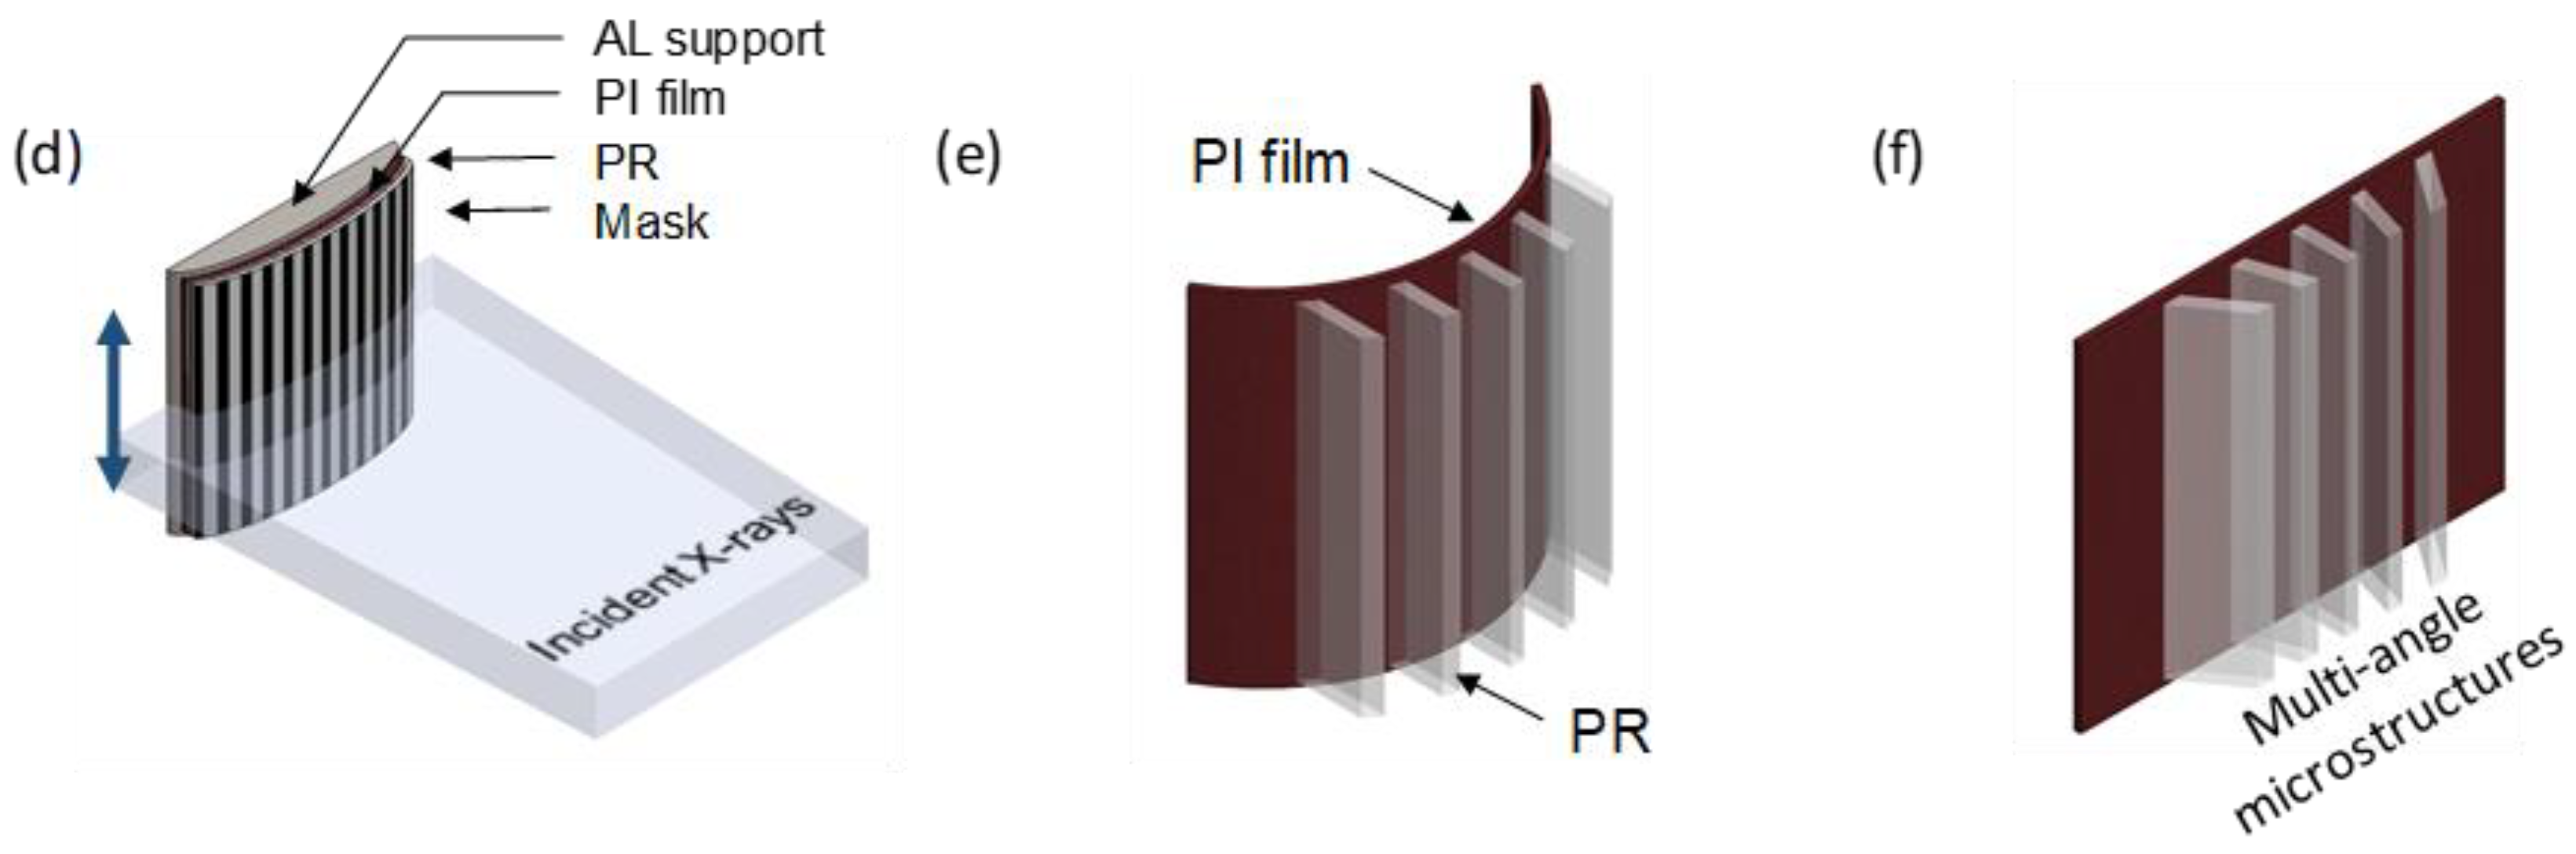 Materials Free Full Text Fabrication Of Polymer Microstructures X Ray Lithography 11 01460 G004a G004b